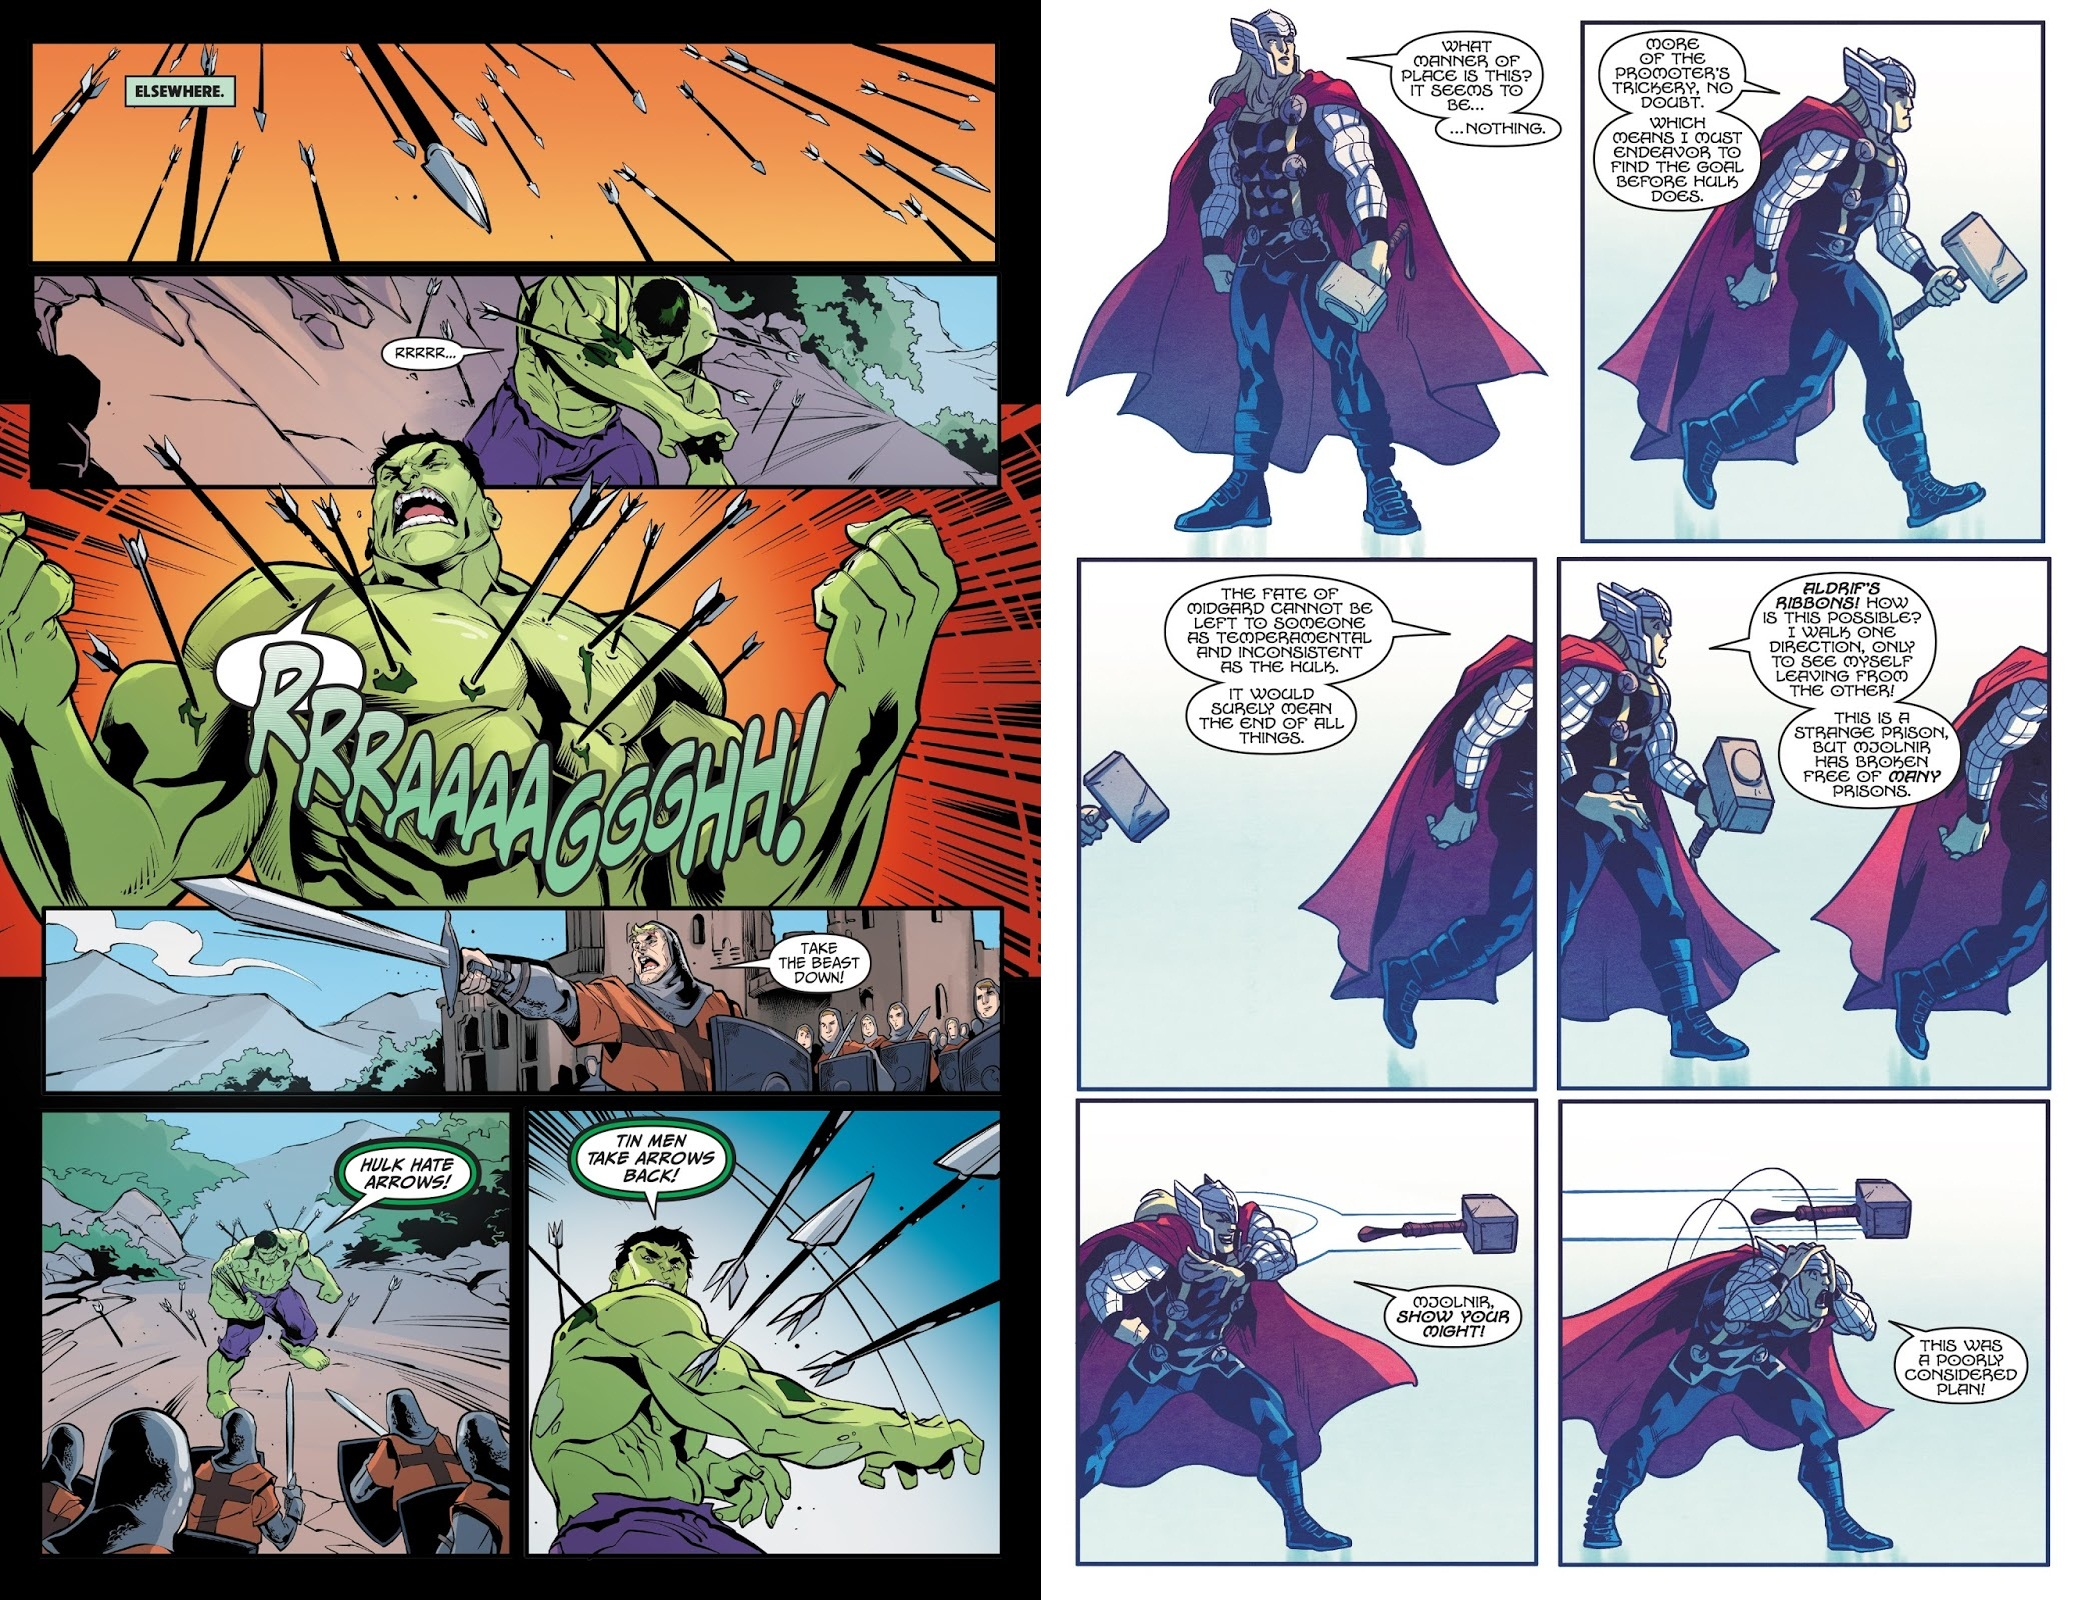 Thor vs Hulk Champions of the Universe review